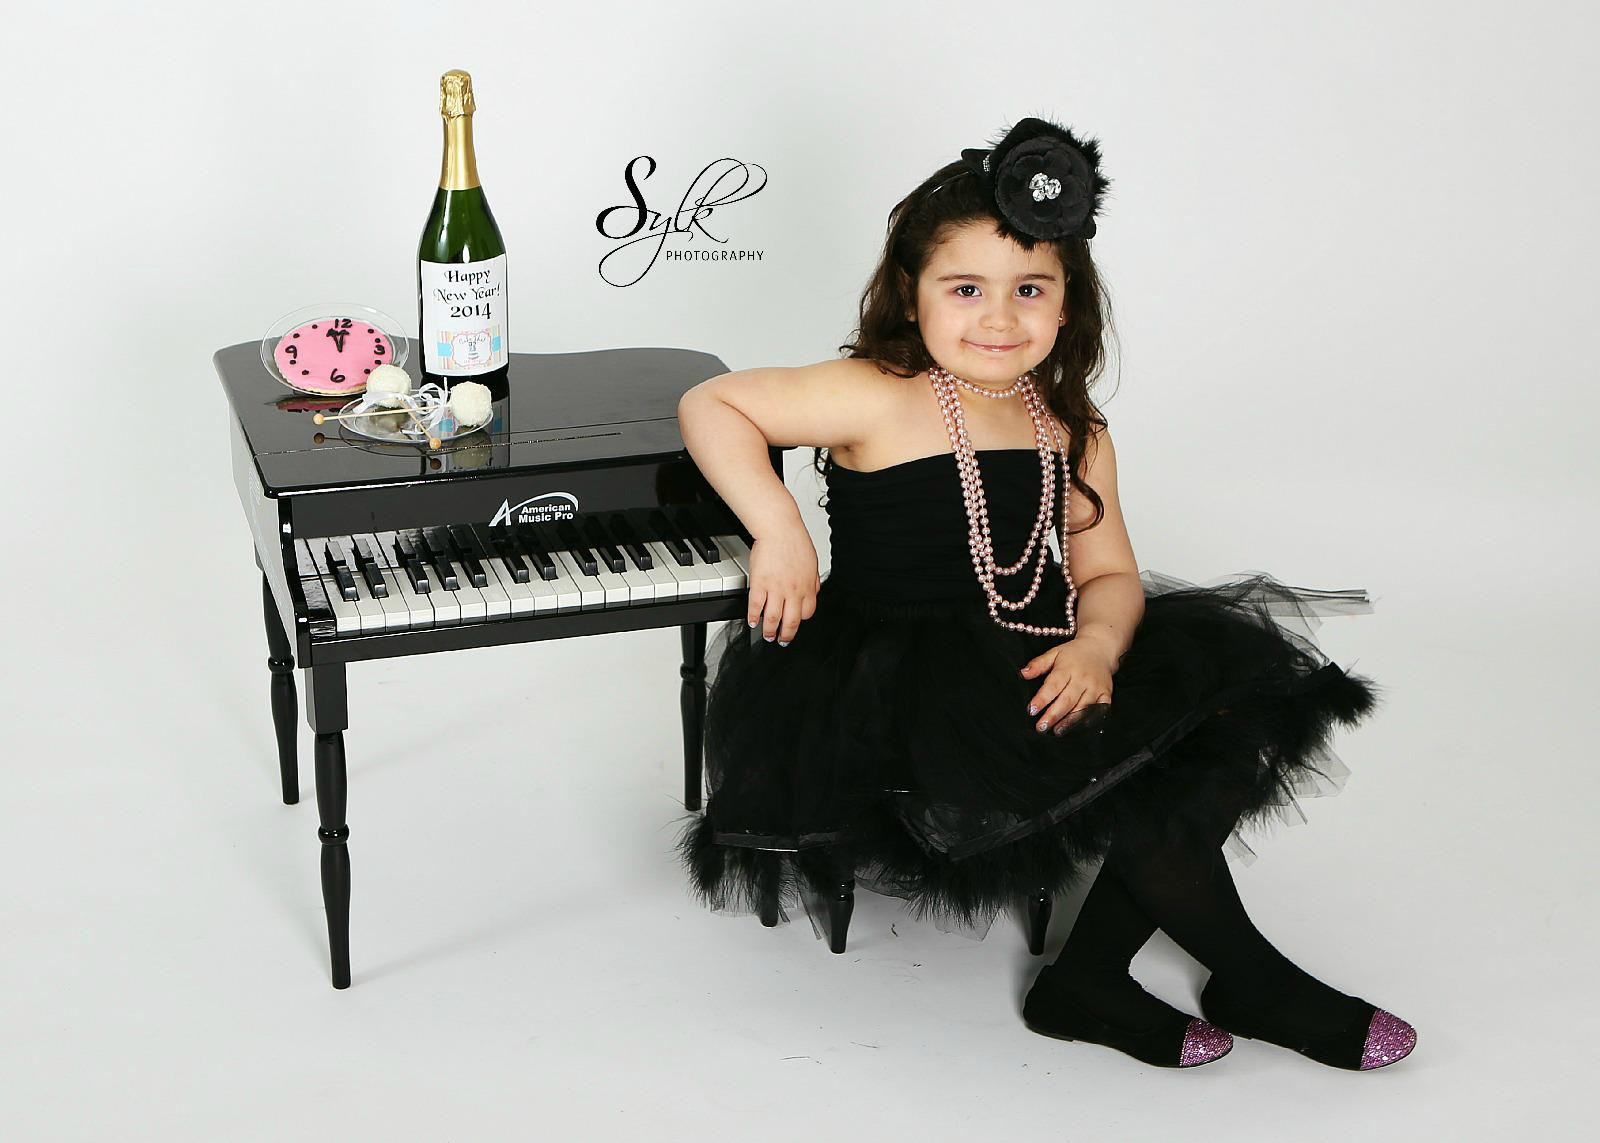 New Year's chic Tutu set $25